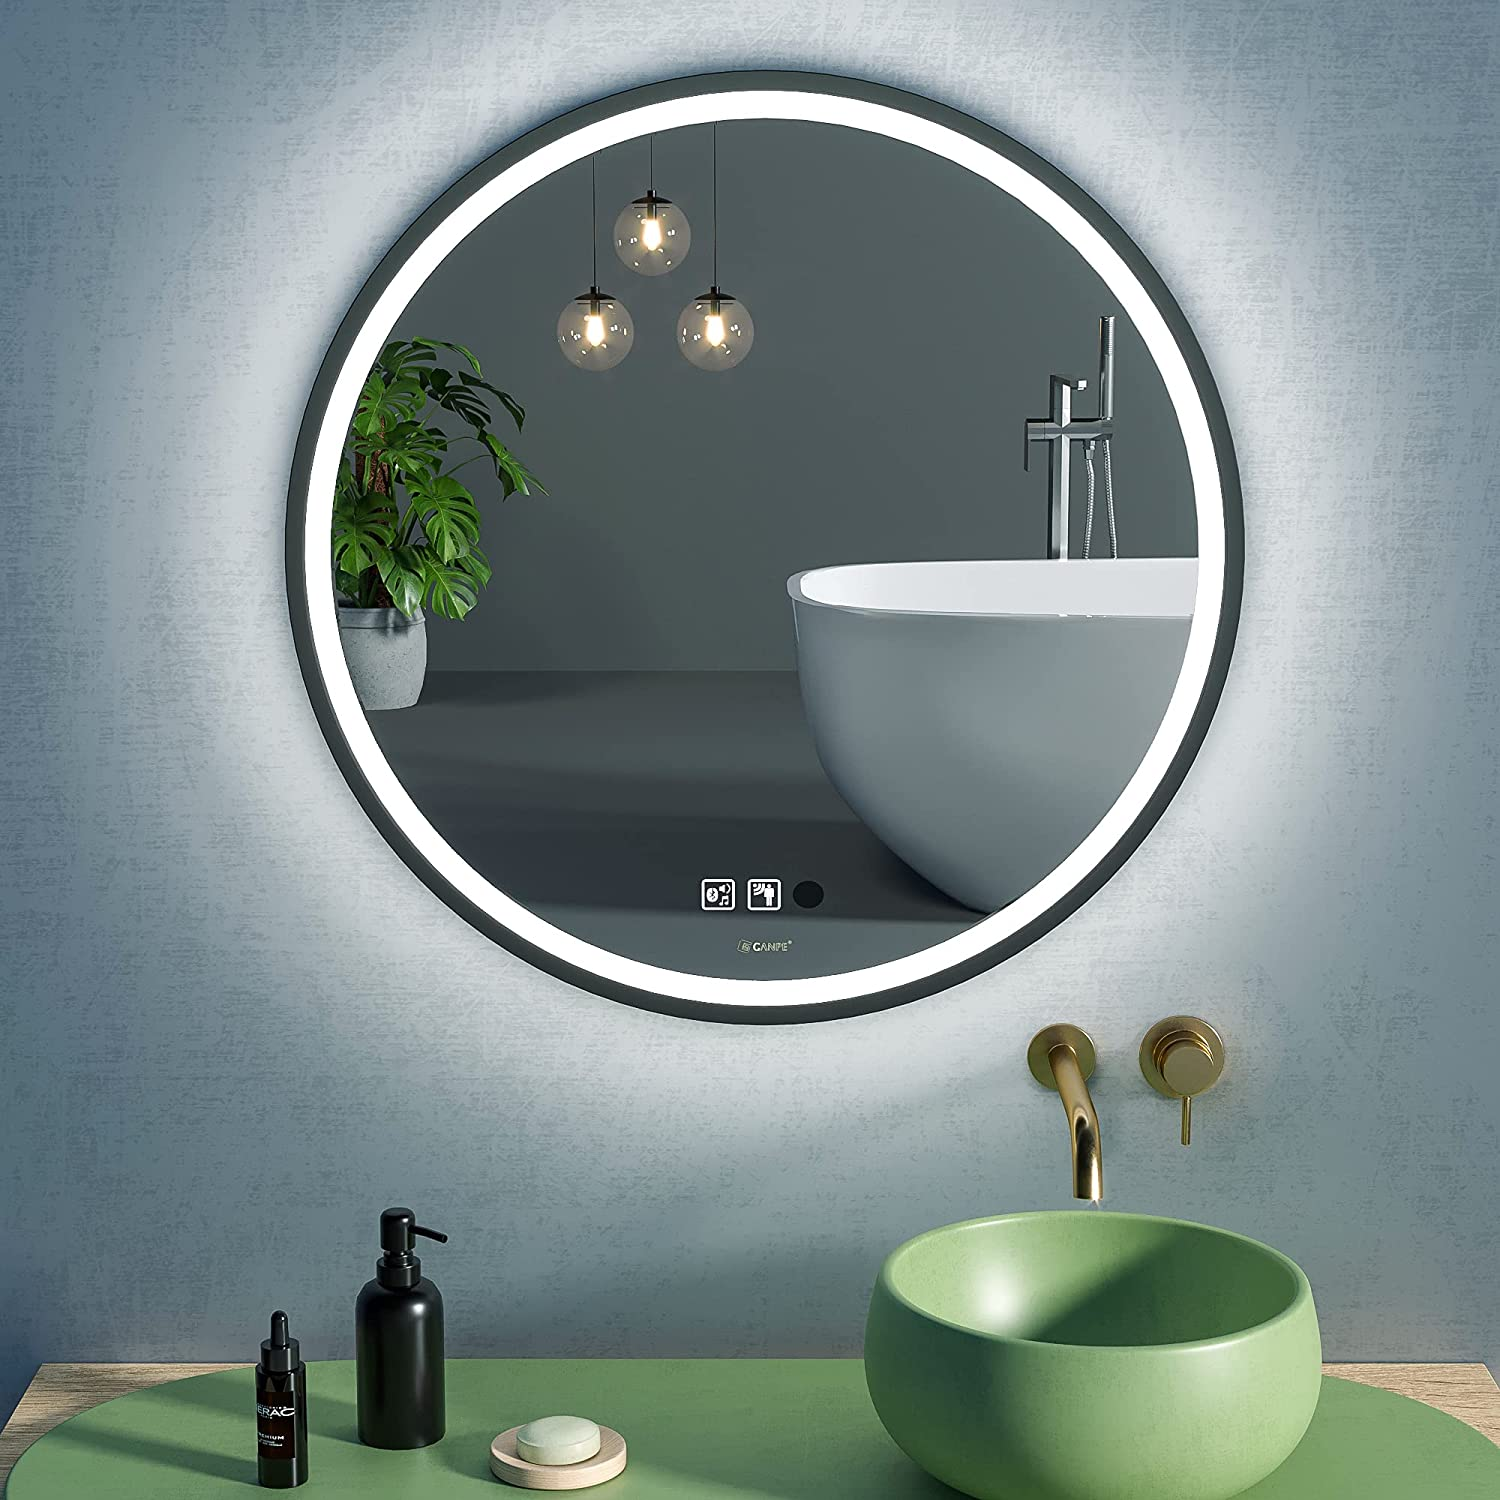 Buy Led Bathroom Mirror Makeup Vanity Mirror Wall Mounted 28 Inch Large Modern Round Illuminated Dimmable Memory Touch Anti Fog Ip44 Waterproof Sensor Mirror Online In Poland B08tbcy4vy